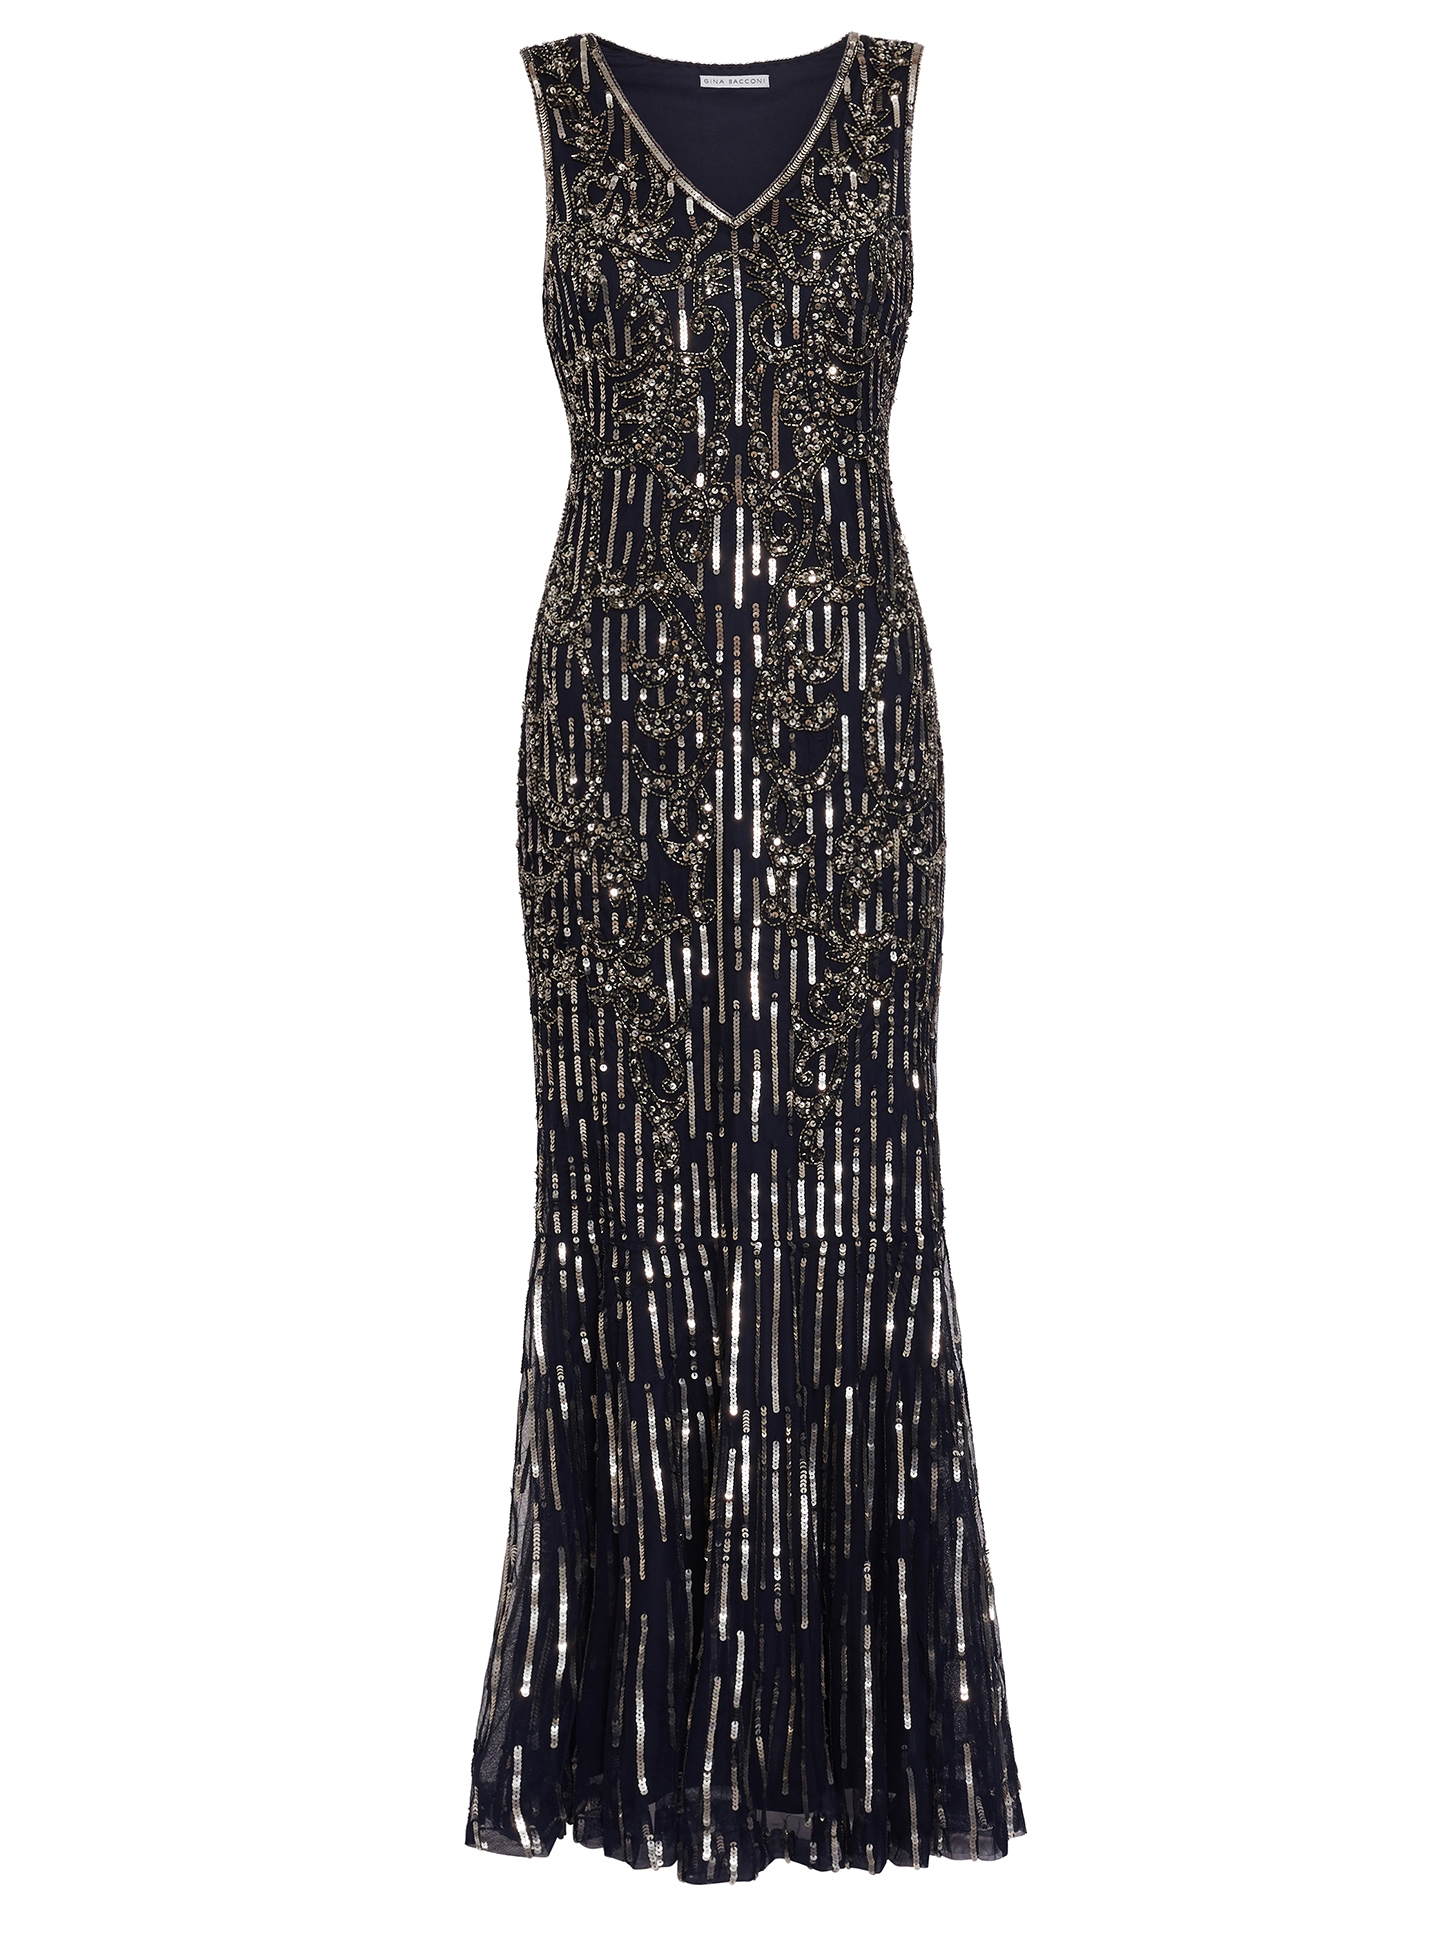 Alundra Beaded Maxi Dress